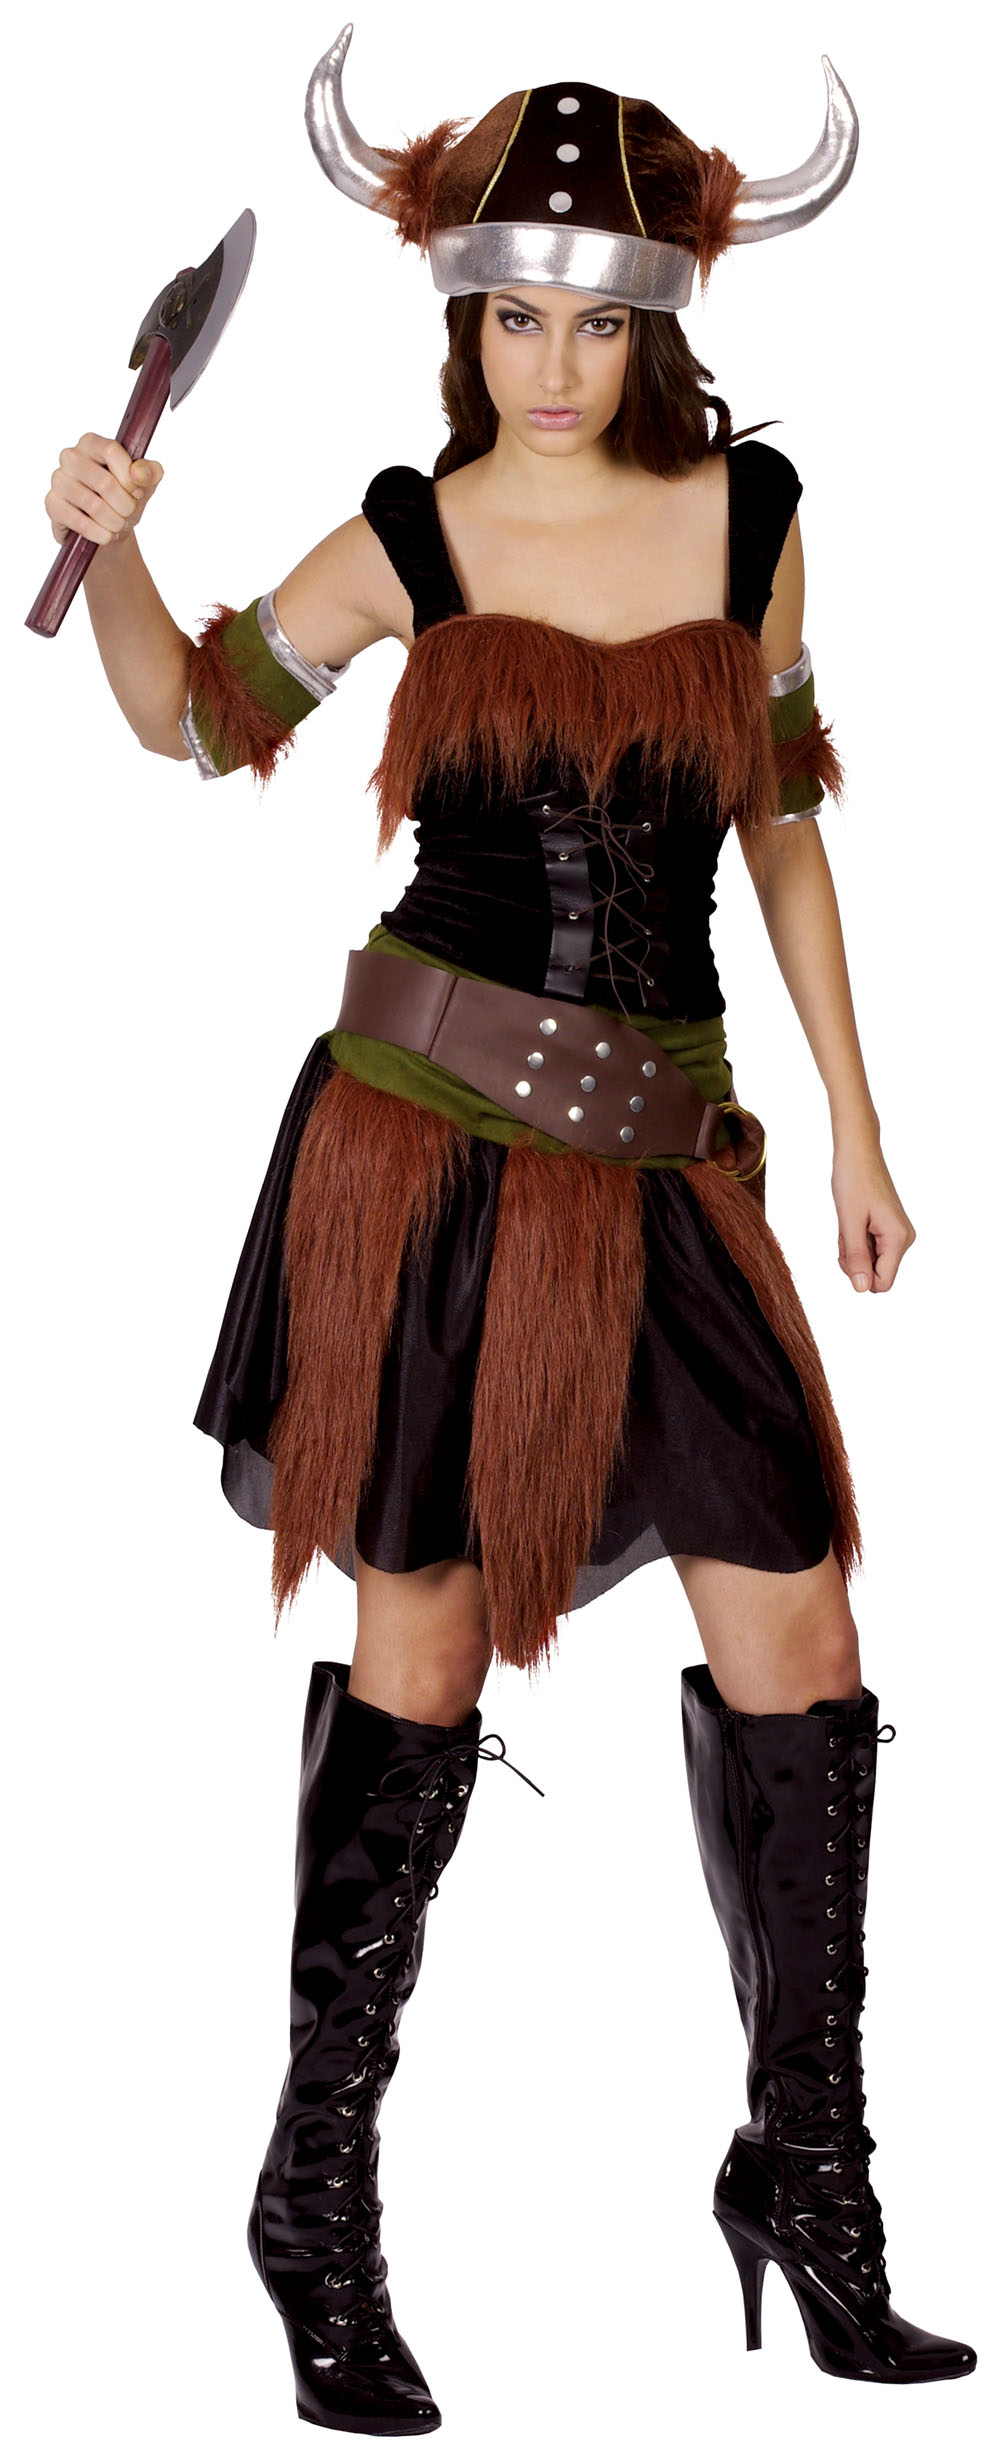 Ladies Historic Viking Bodicia Theme Fancy Dress Costume Black & Brown UK 10-14